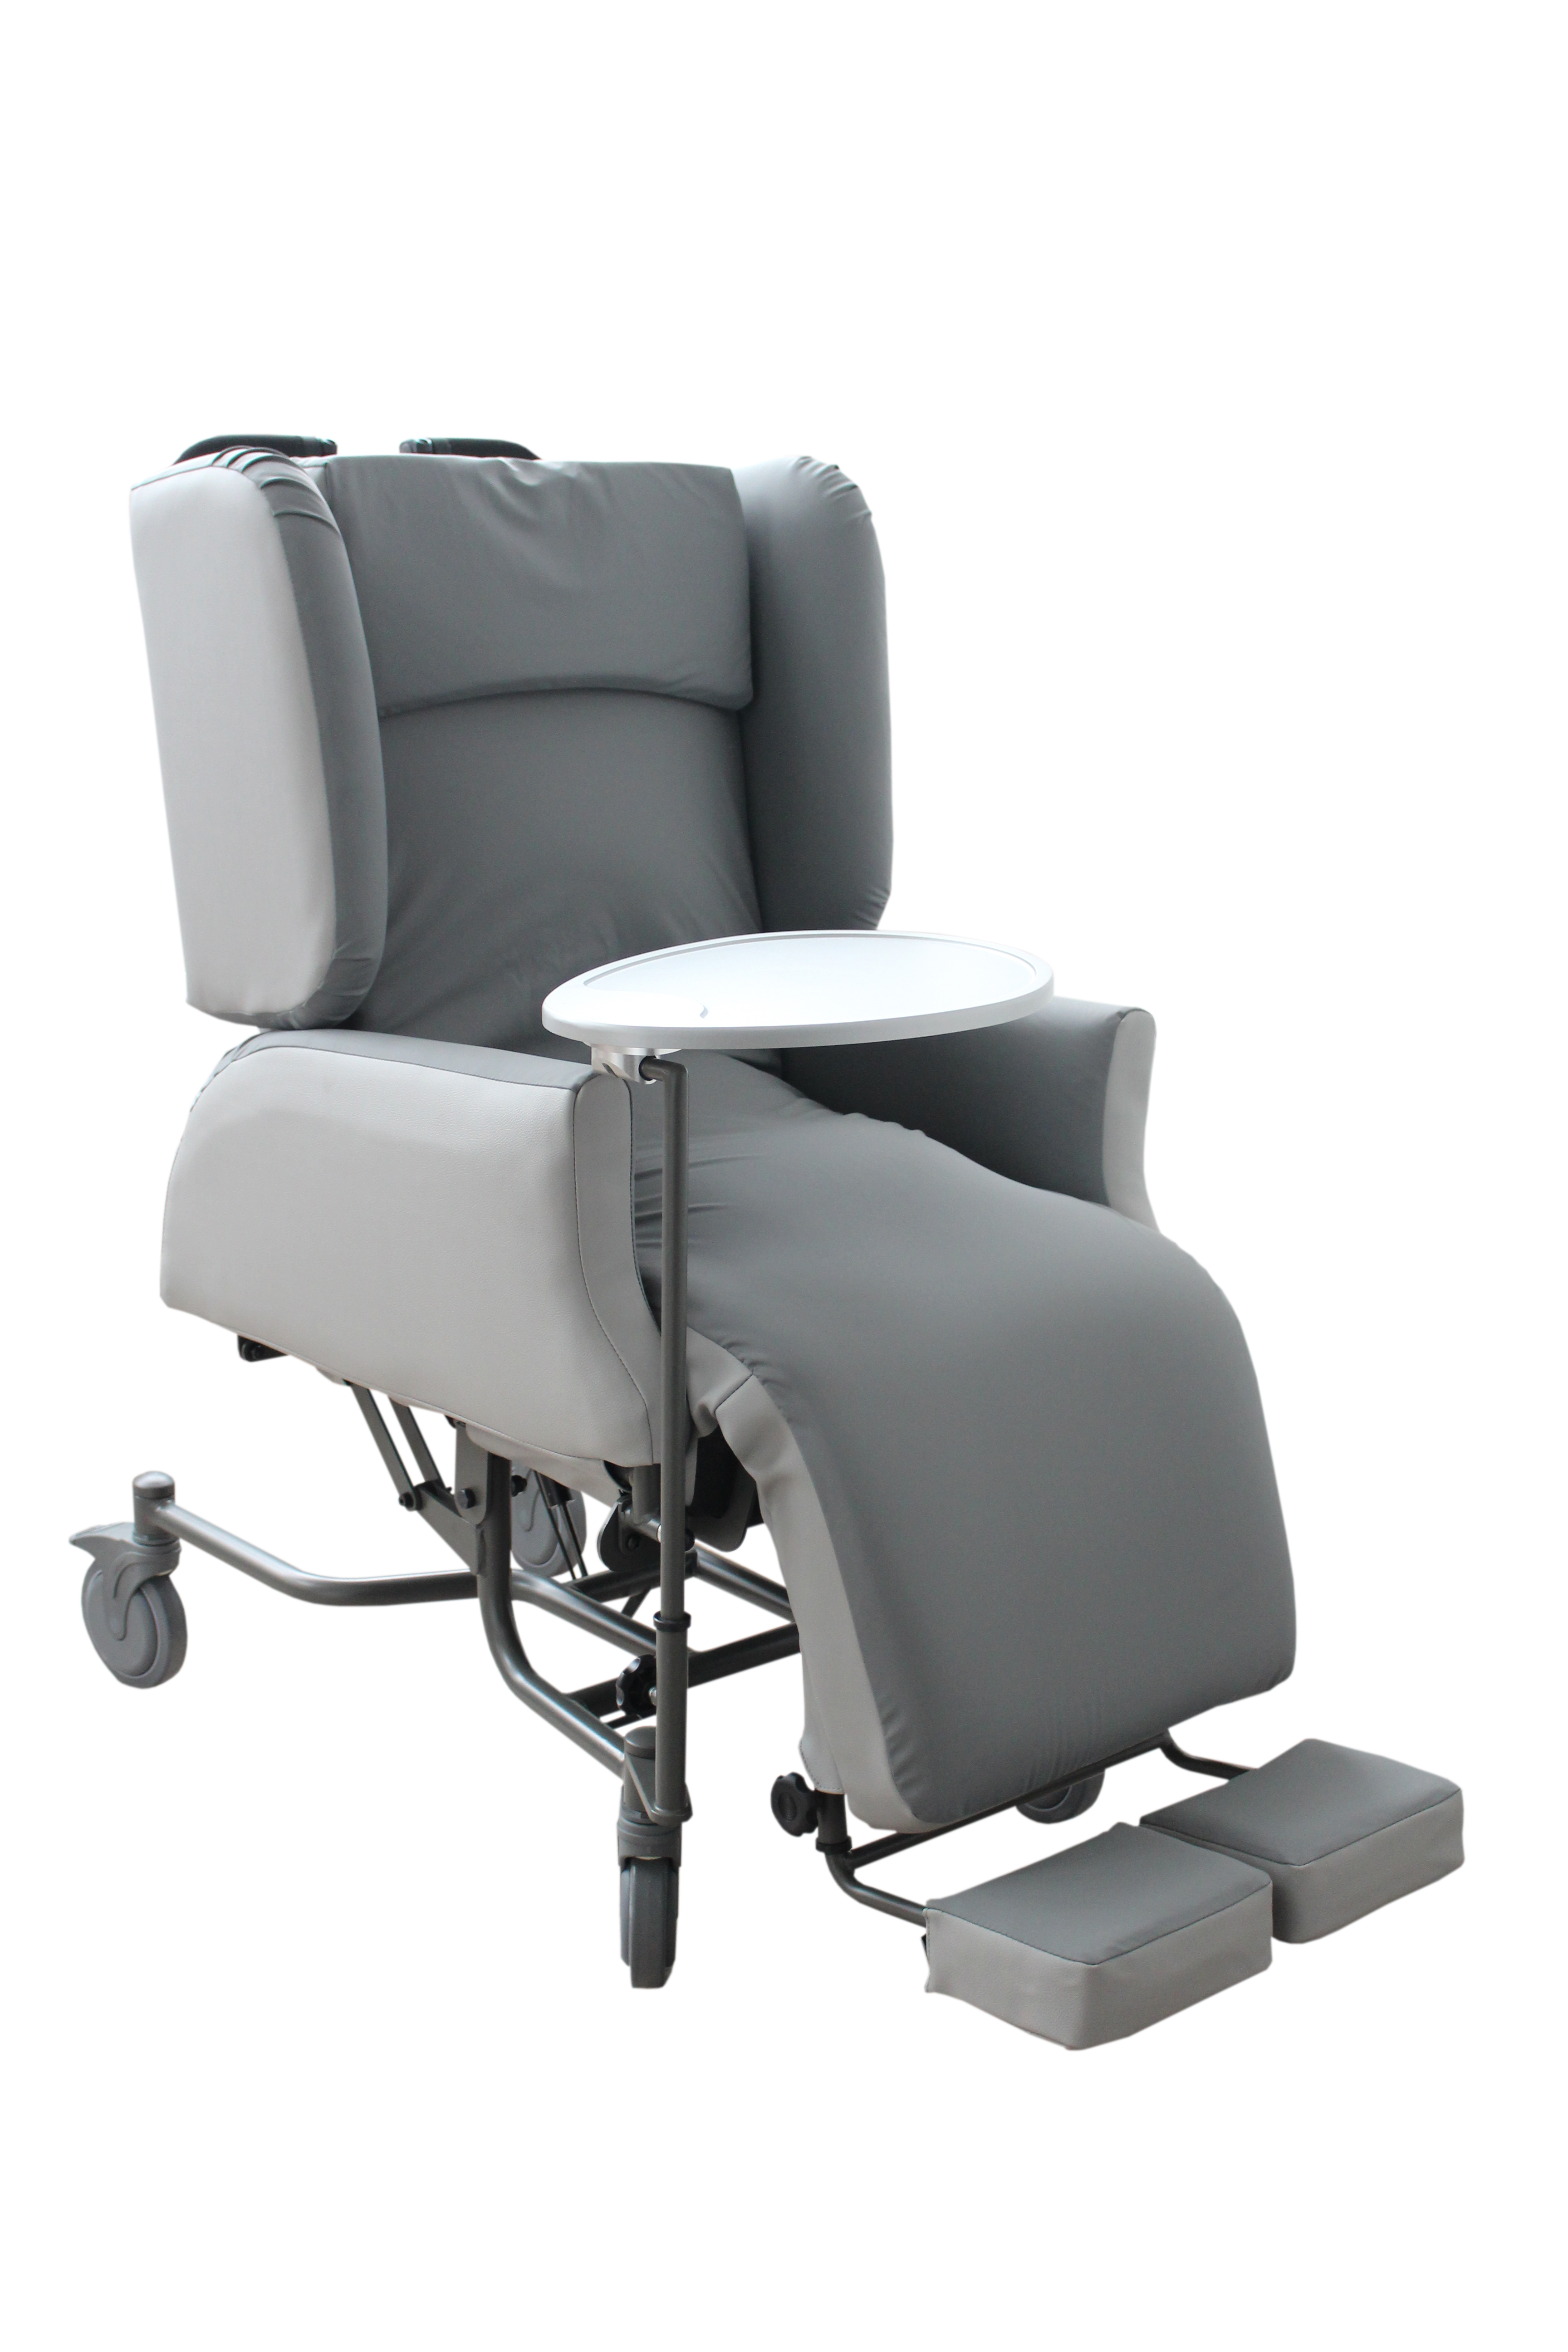 Integral Air Chair